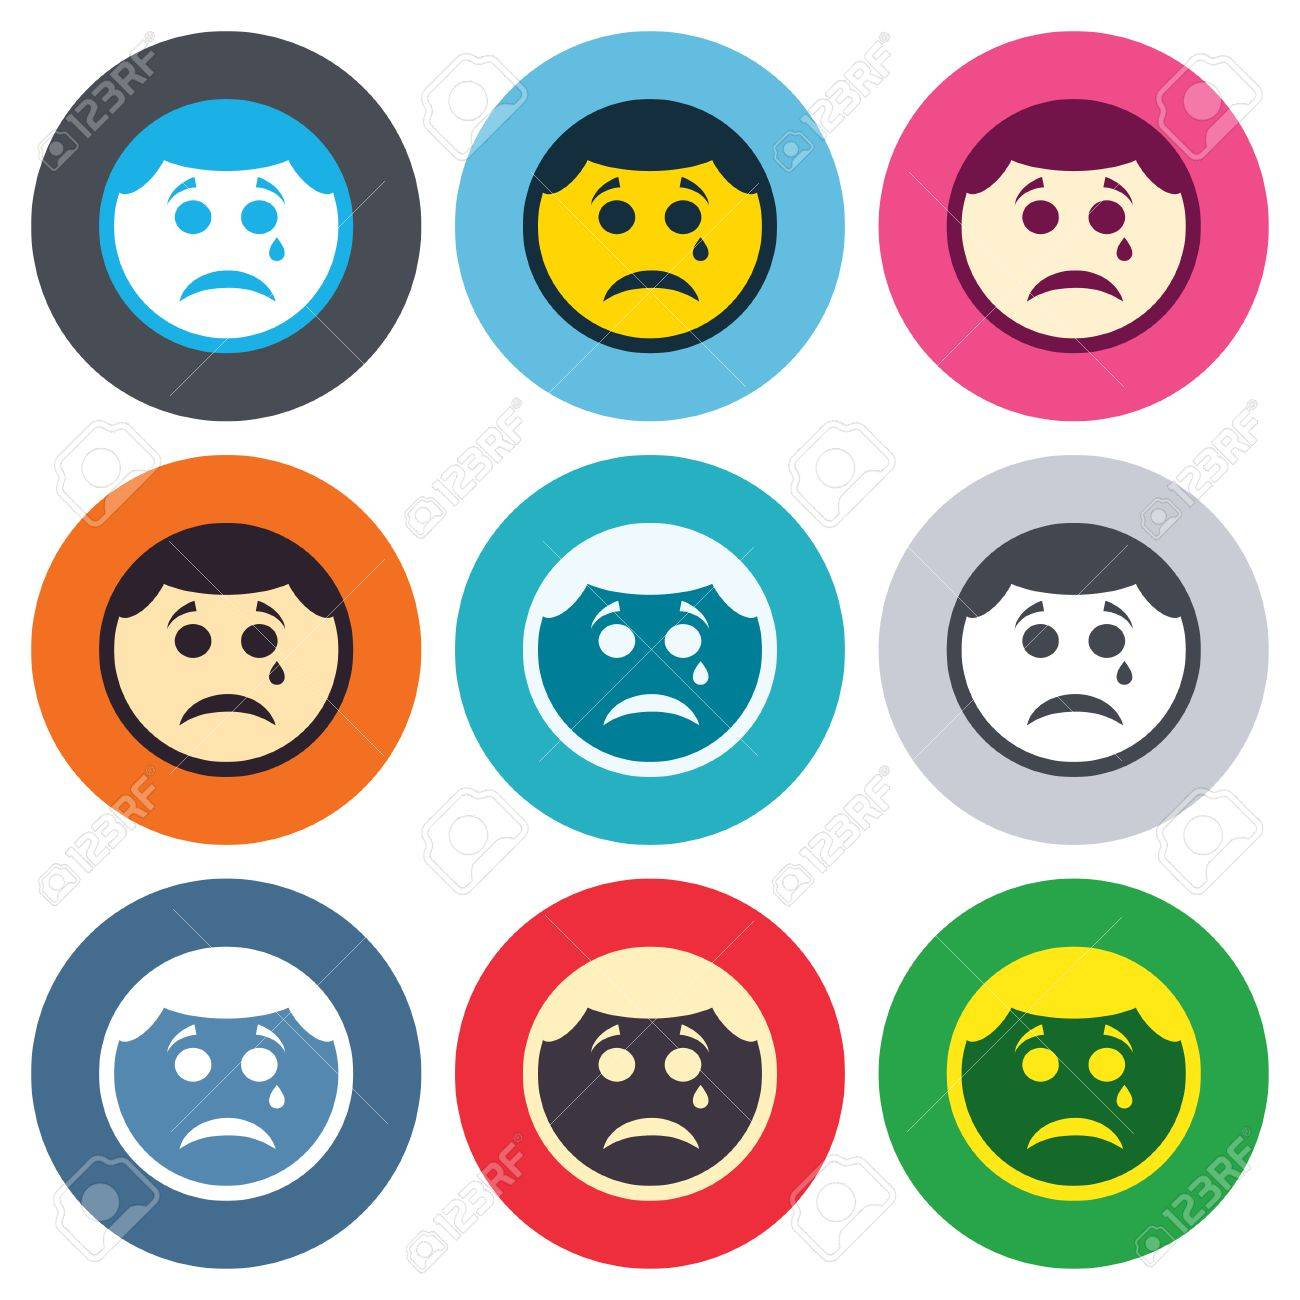 Picture of sad face crying impremedia sad face with tear sign icon crying chat symbol colored round buttons flat buycottarizona Gallery